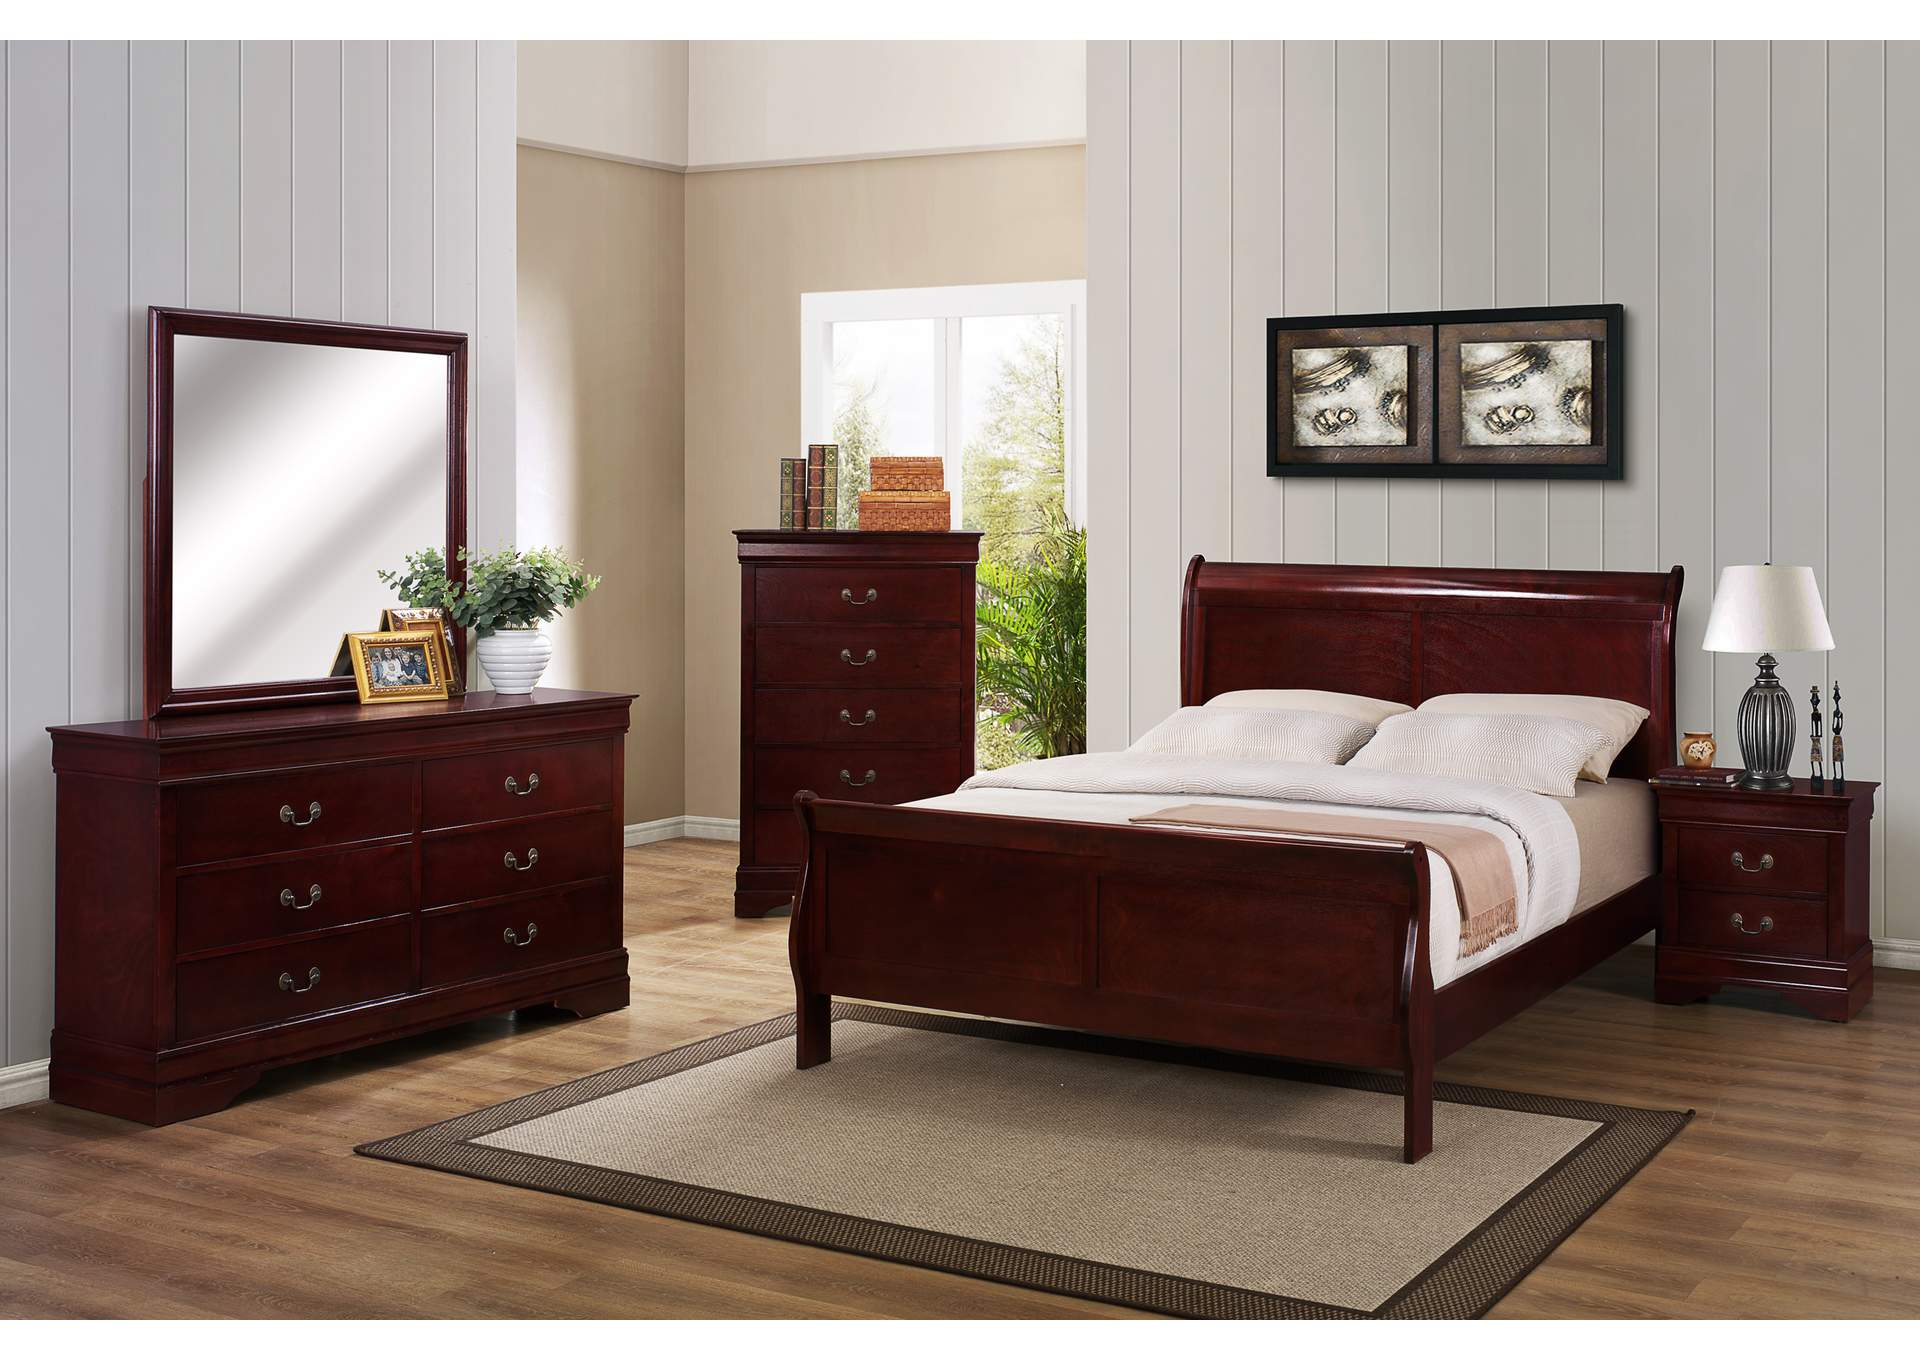 Louis Philip Cherry Queen Sleigh Bed w/6 Drawer Dresser, Mirror and Nightstand,Crown Mark